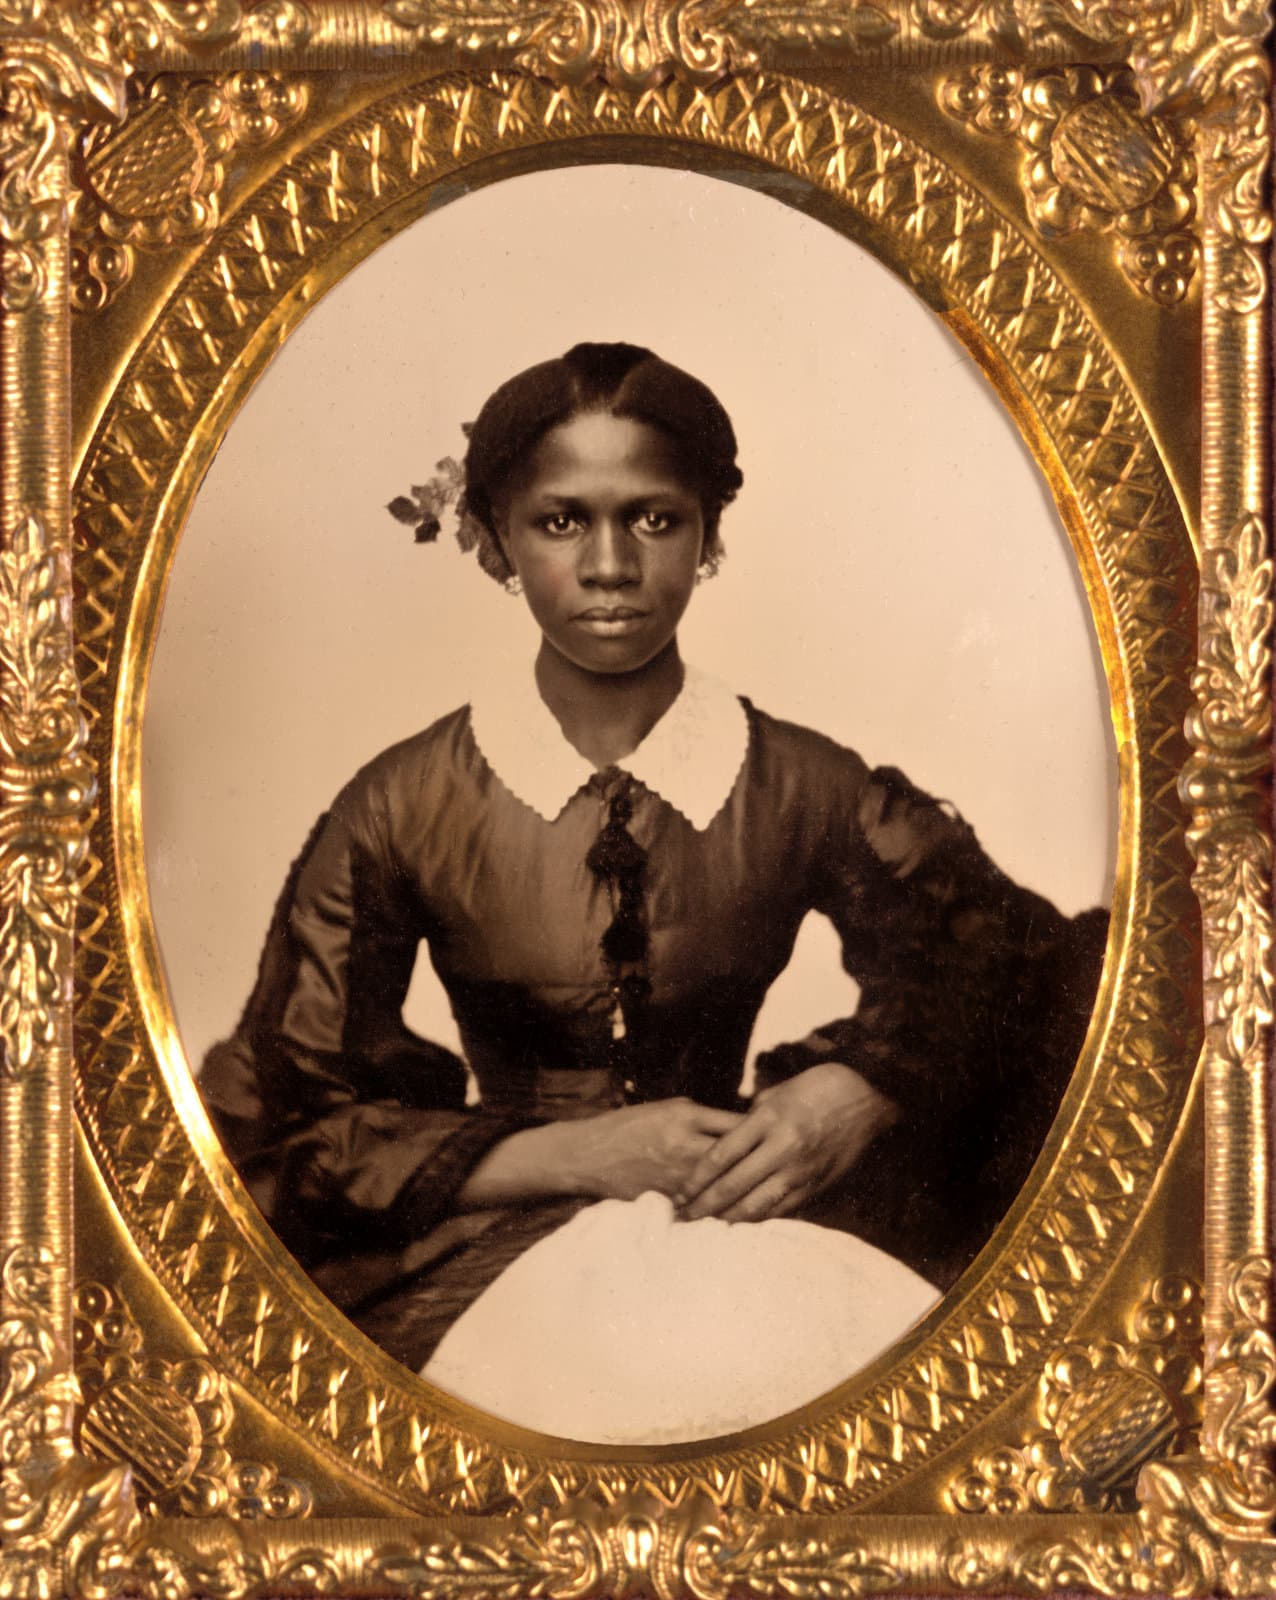 Formal antique portrait of an unidentified African-American woman during the Civil War era (1860s)